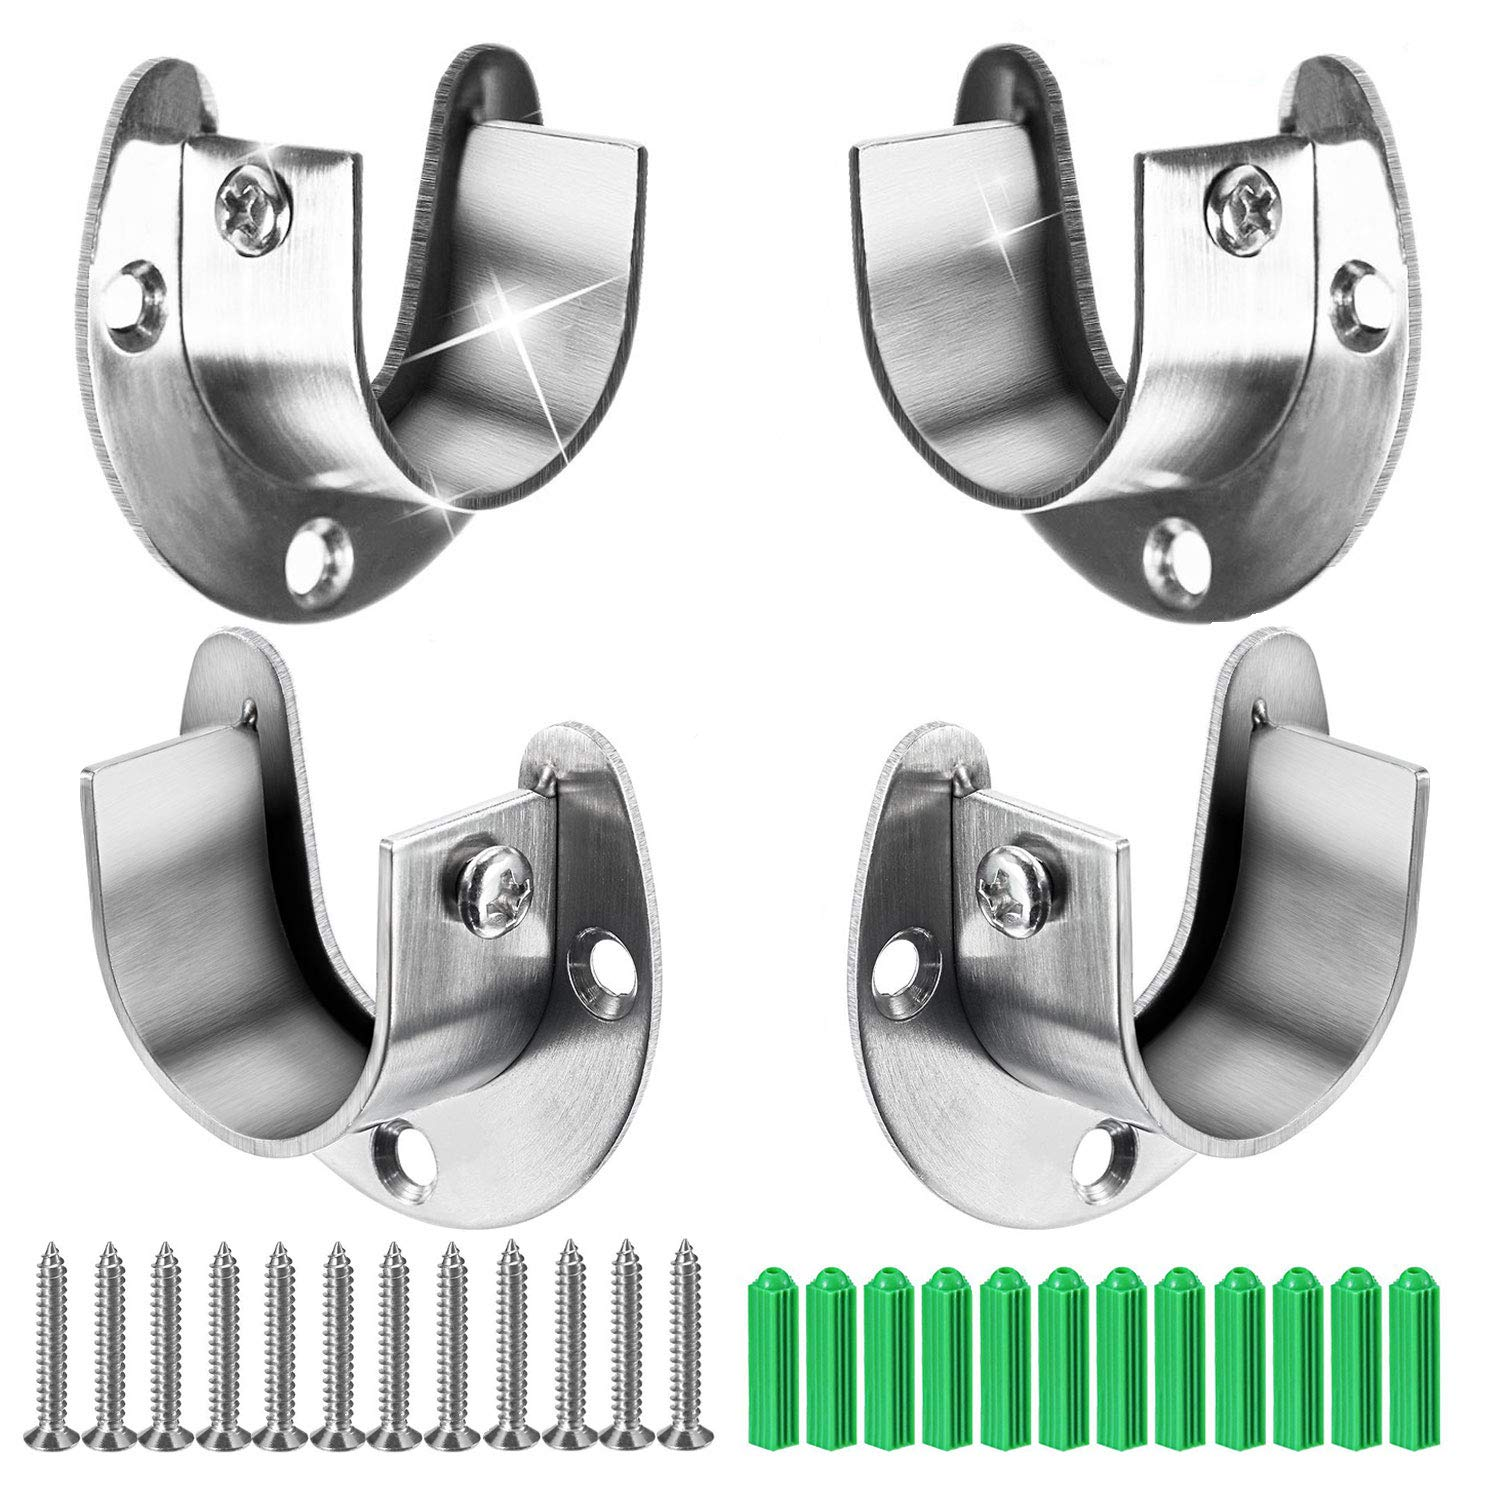 Canomo 4 Packs Heavy Duty Stainless Steel Closet Rod End Supports Closet Pole Sockets Flange Rod Holder with Screws, 1-1/3 Inches Diameter, U-Shaped